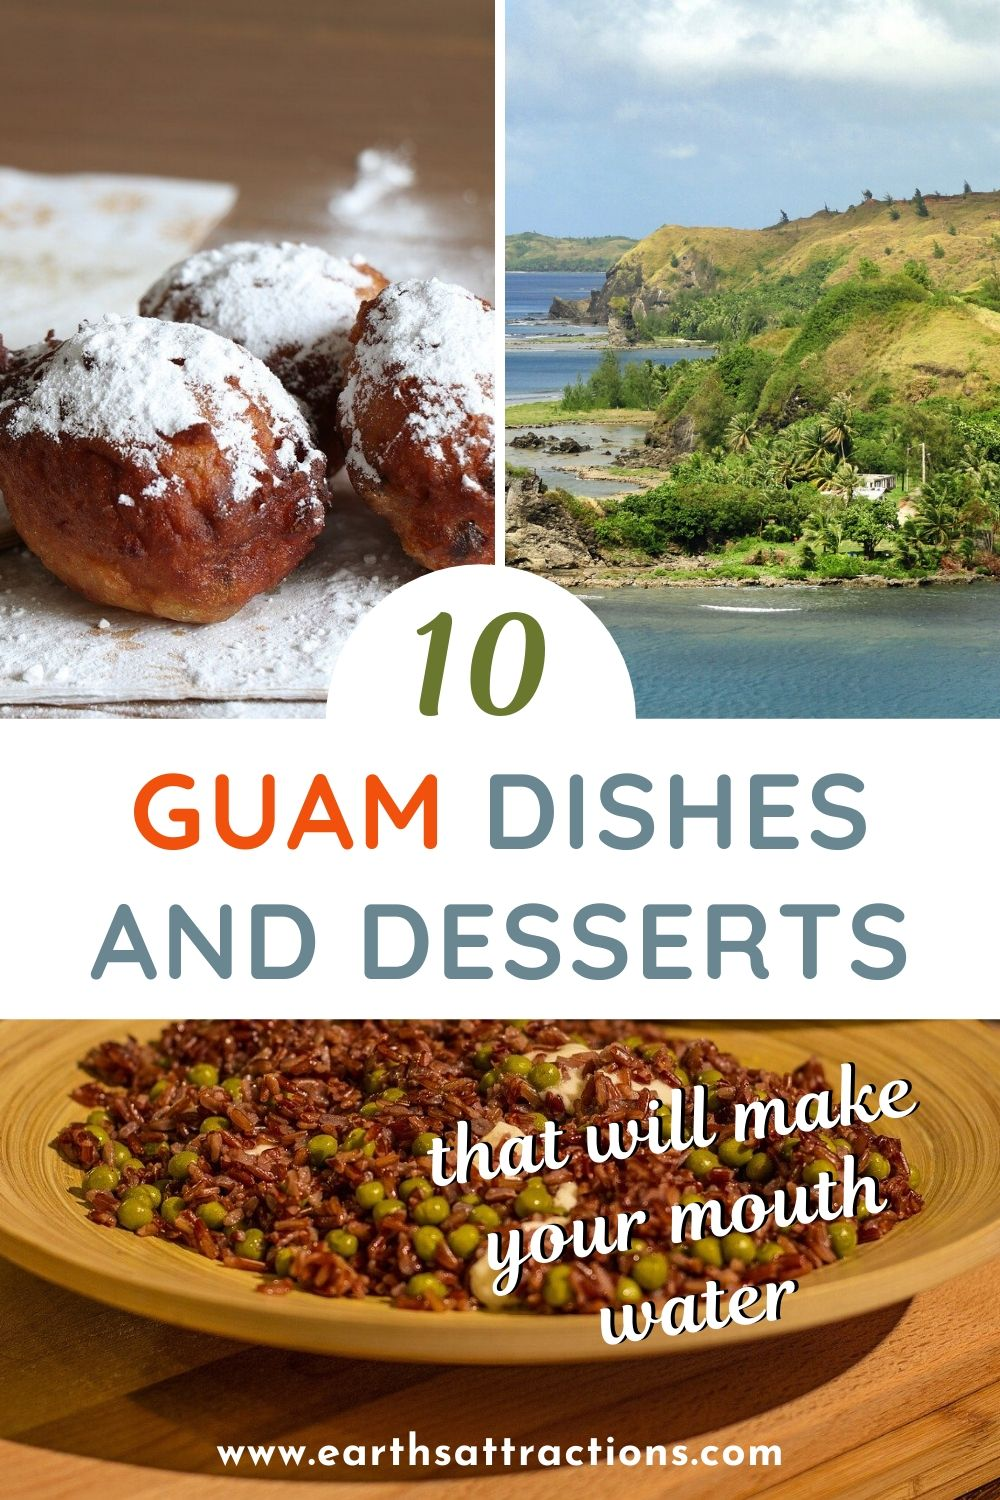 What to eat in Guam. Discover the best Guamanian dishes and desserts that will make your mouth water. These Guam dishes are a must-try on your trip to Guam. The best Chamorro desserts and Chamorro dishes are included! #chamorro #guam #guamfood #guamdesserts #guamdis #guamaniandishes #earthsattractions #food #travel #traveldestinations #oceania